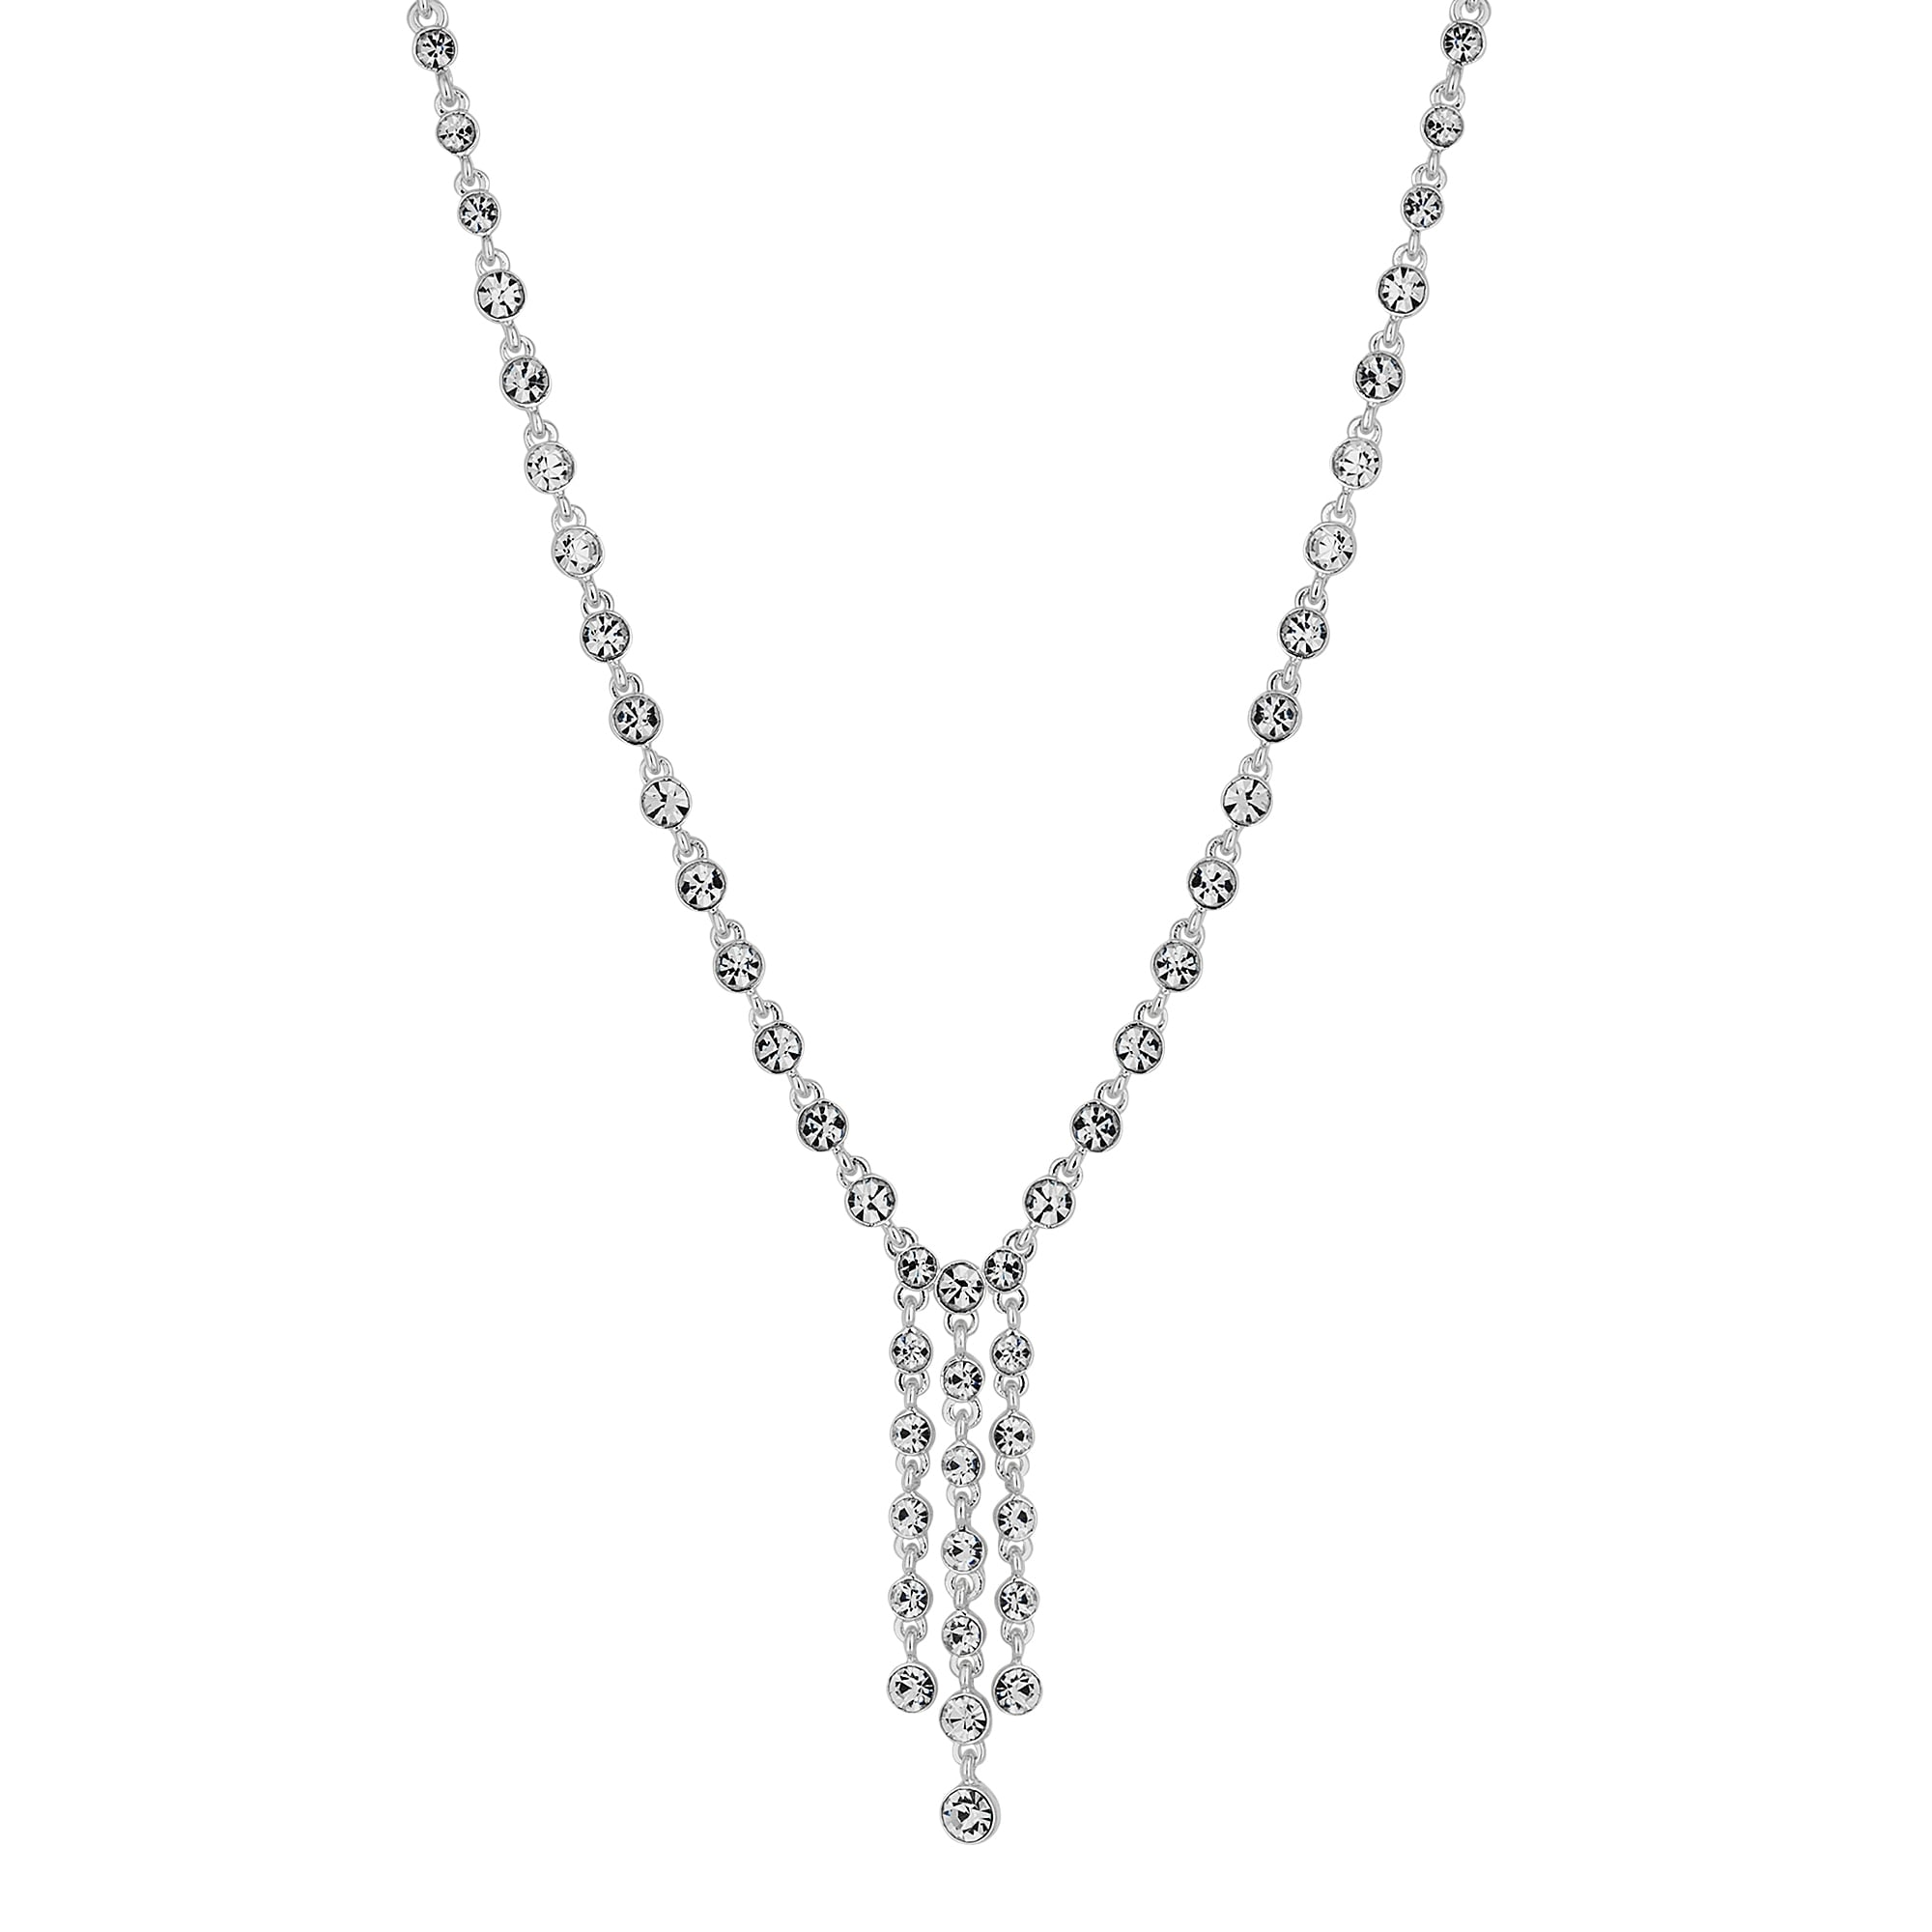 necklace accessories large noonday jewelry droplet silver collection shop